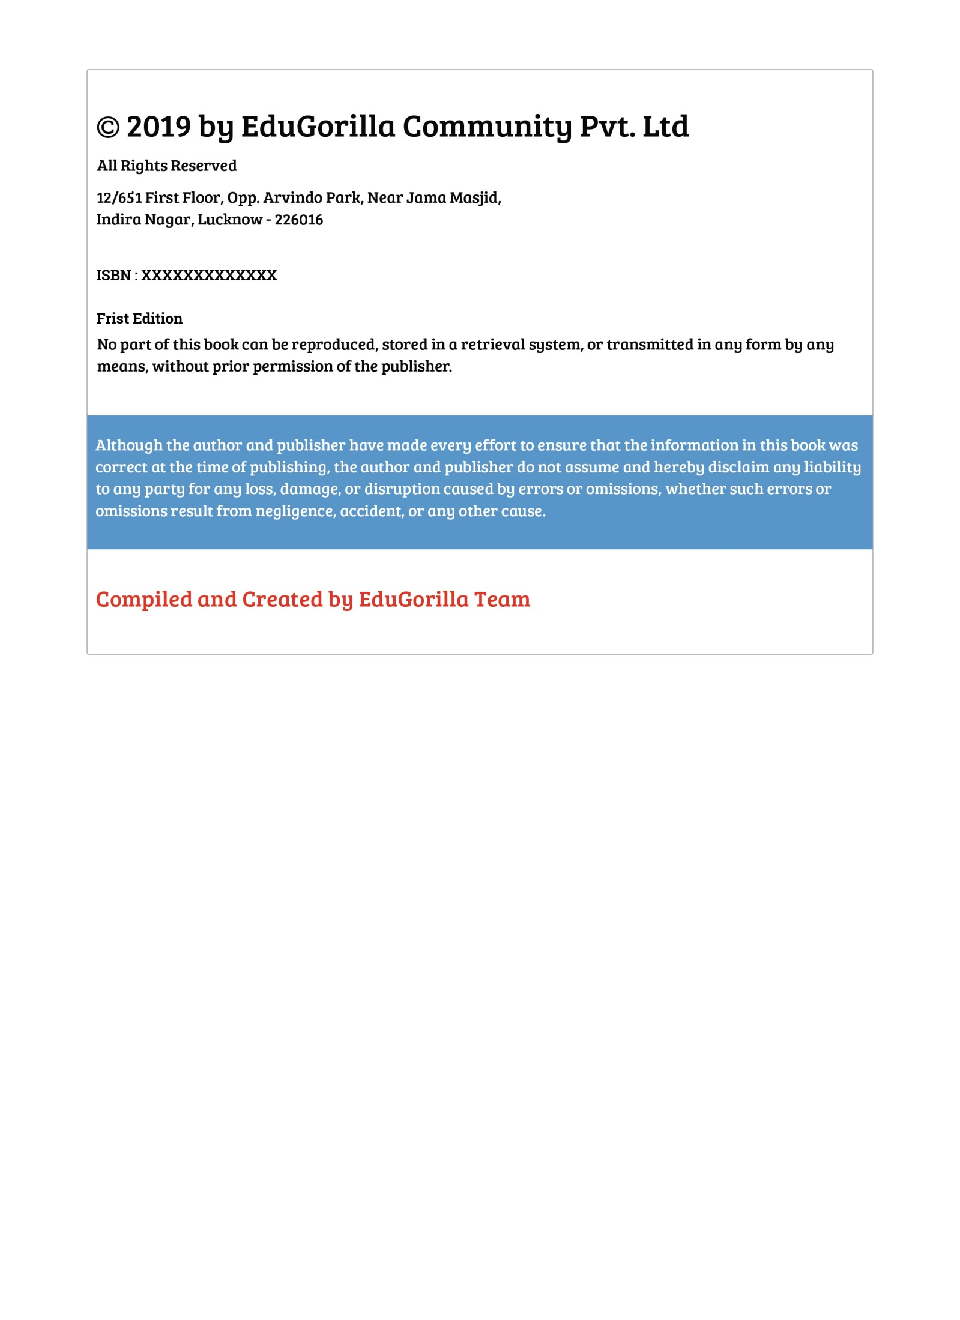 EduGorilla LIC Housing Finance Assistant Manager (Legal Officer) 2020  - 5 Mock Tests For Complete Preparation  - Page 4